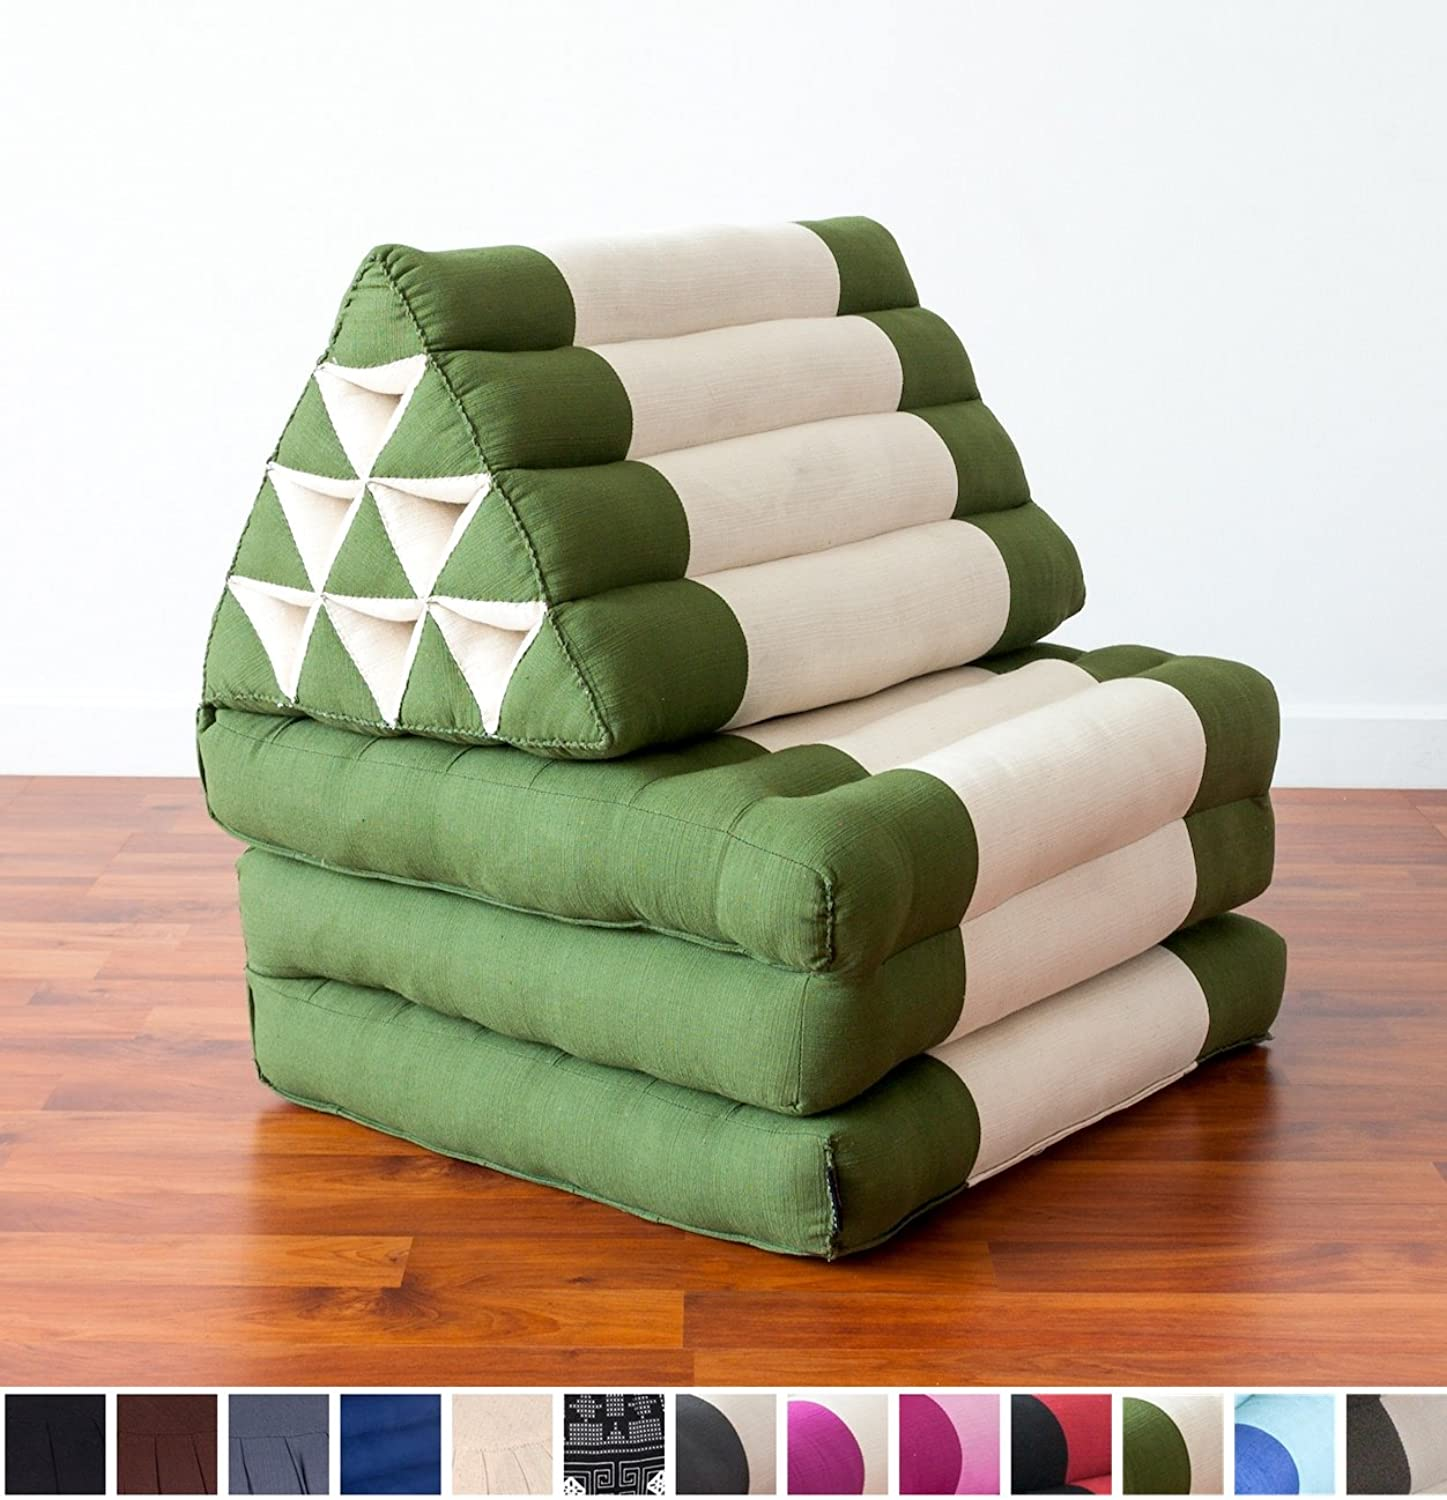 Leewadee Foldout Triangle Thai Cushion, 67x21x3 cm, Kapok Fabric, Green White, Premium Double Stitched